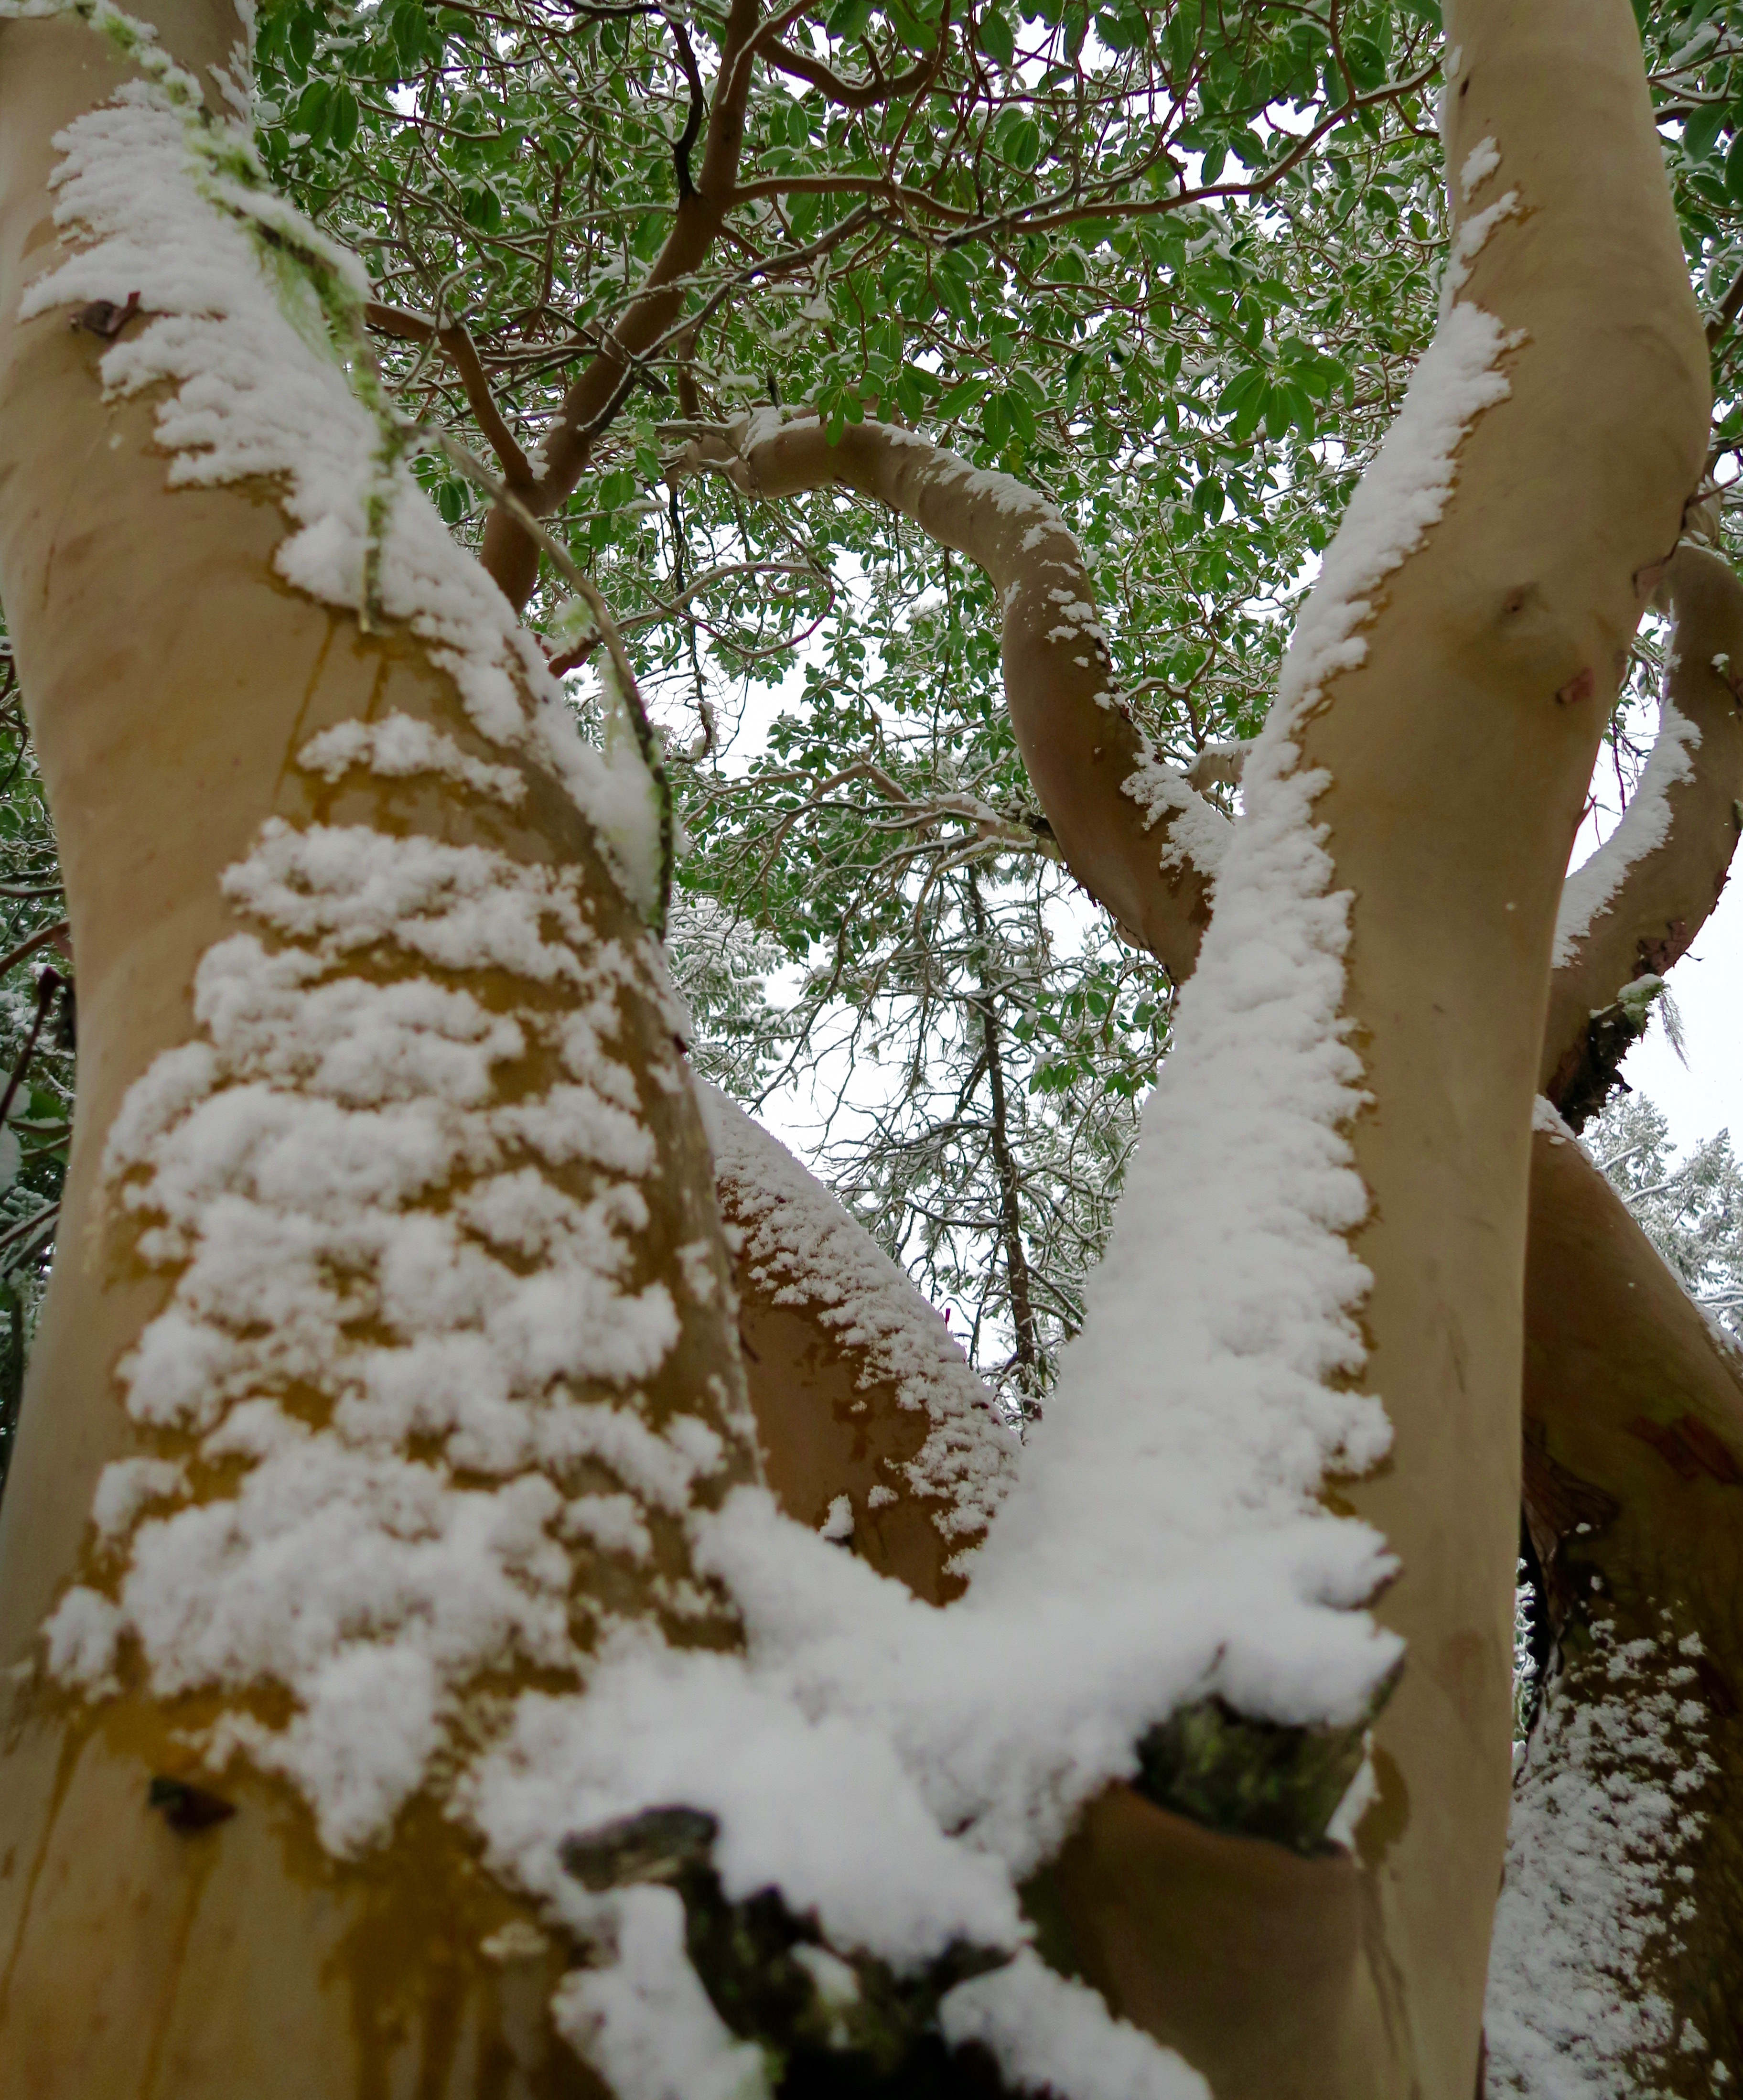 Madrone lightly dusted with snow in Rogue River National Forest